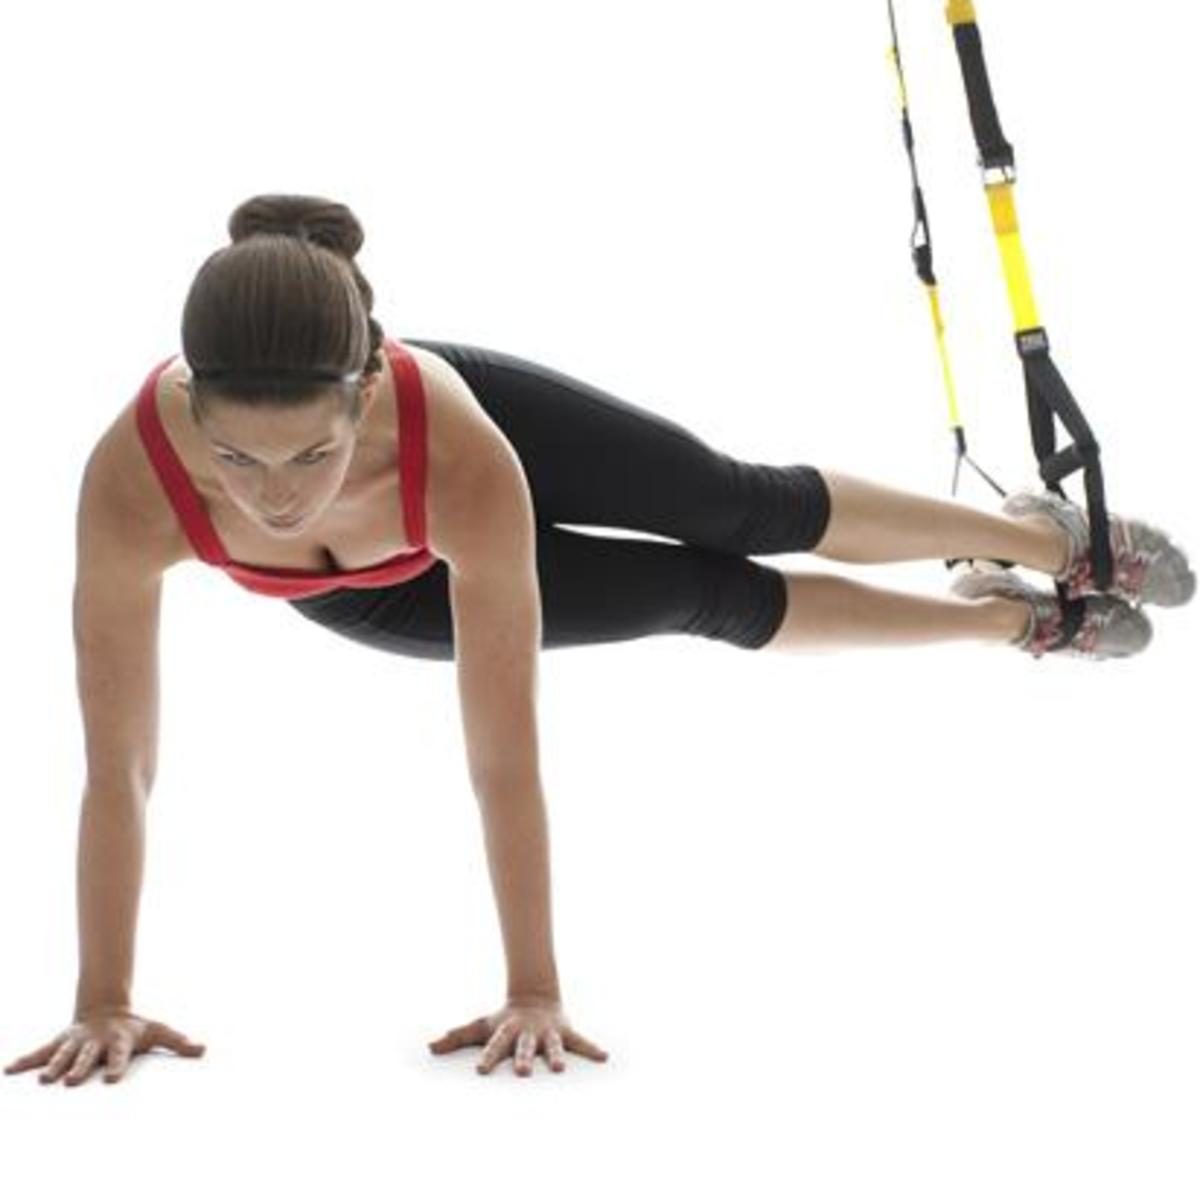 A pendulum exercise using TRX.